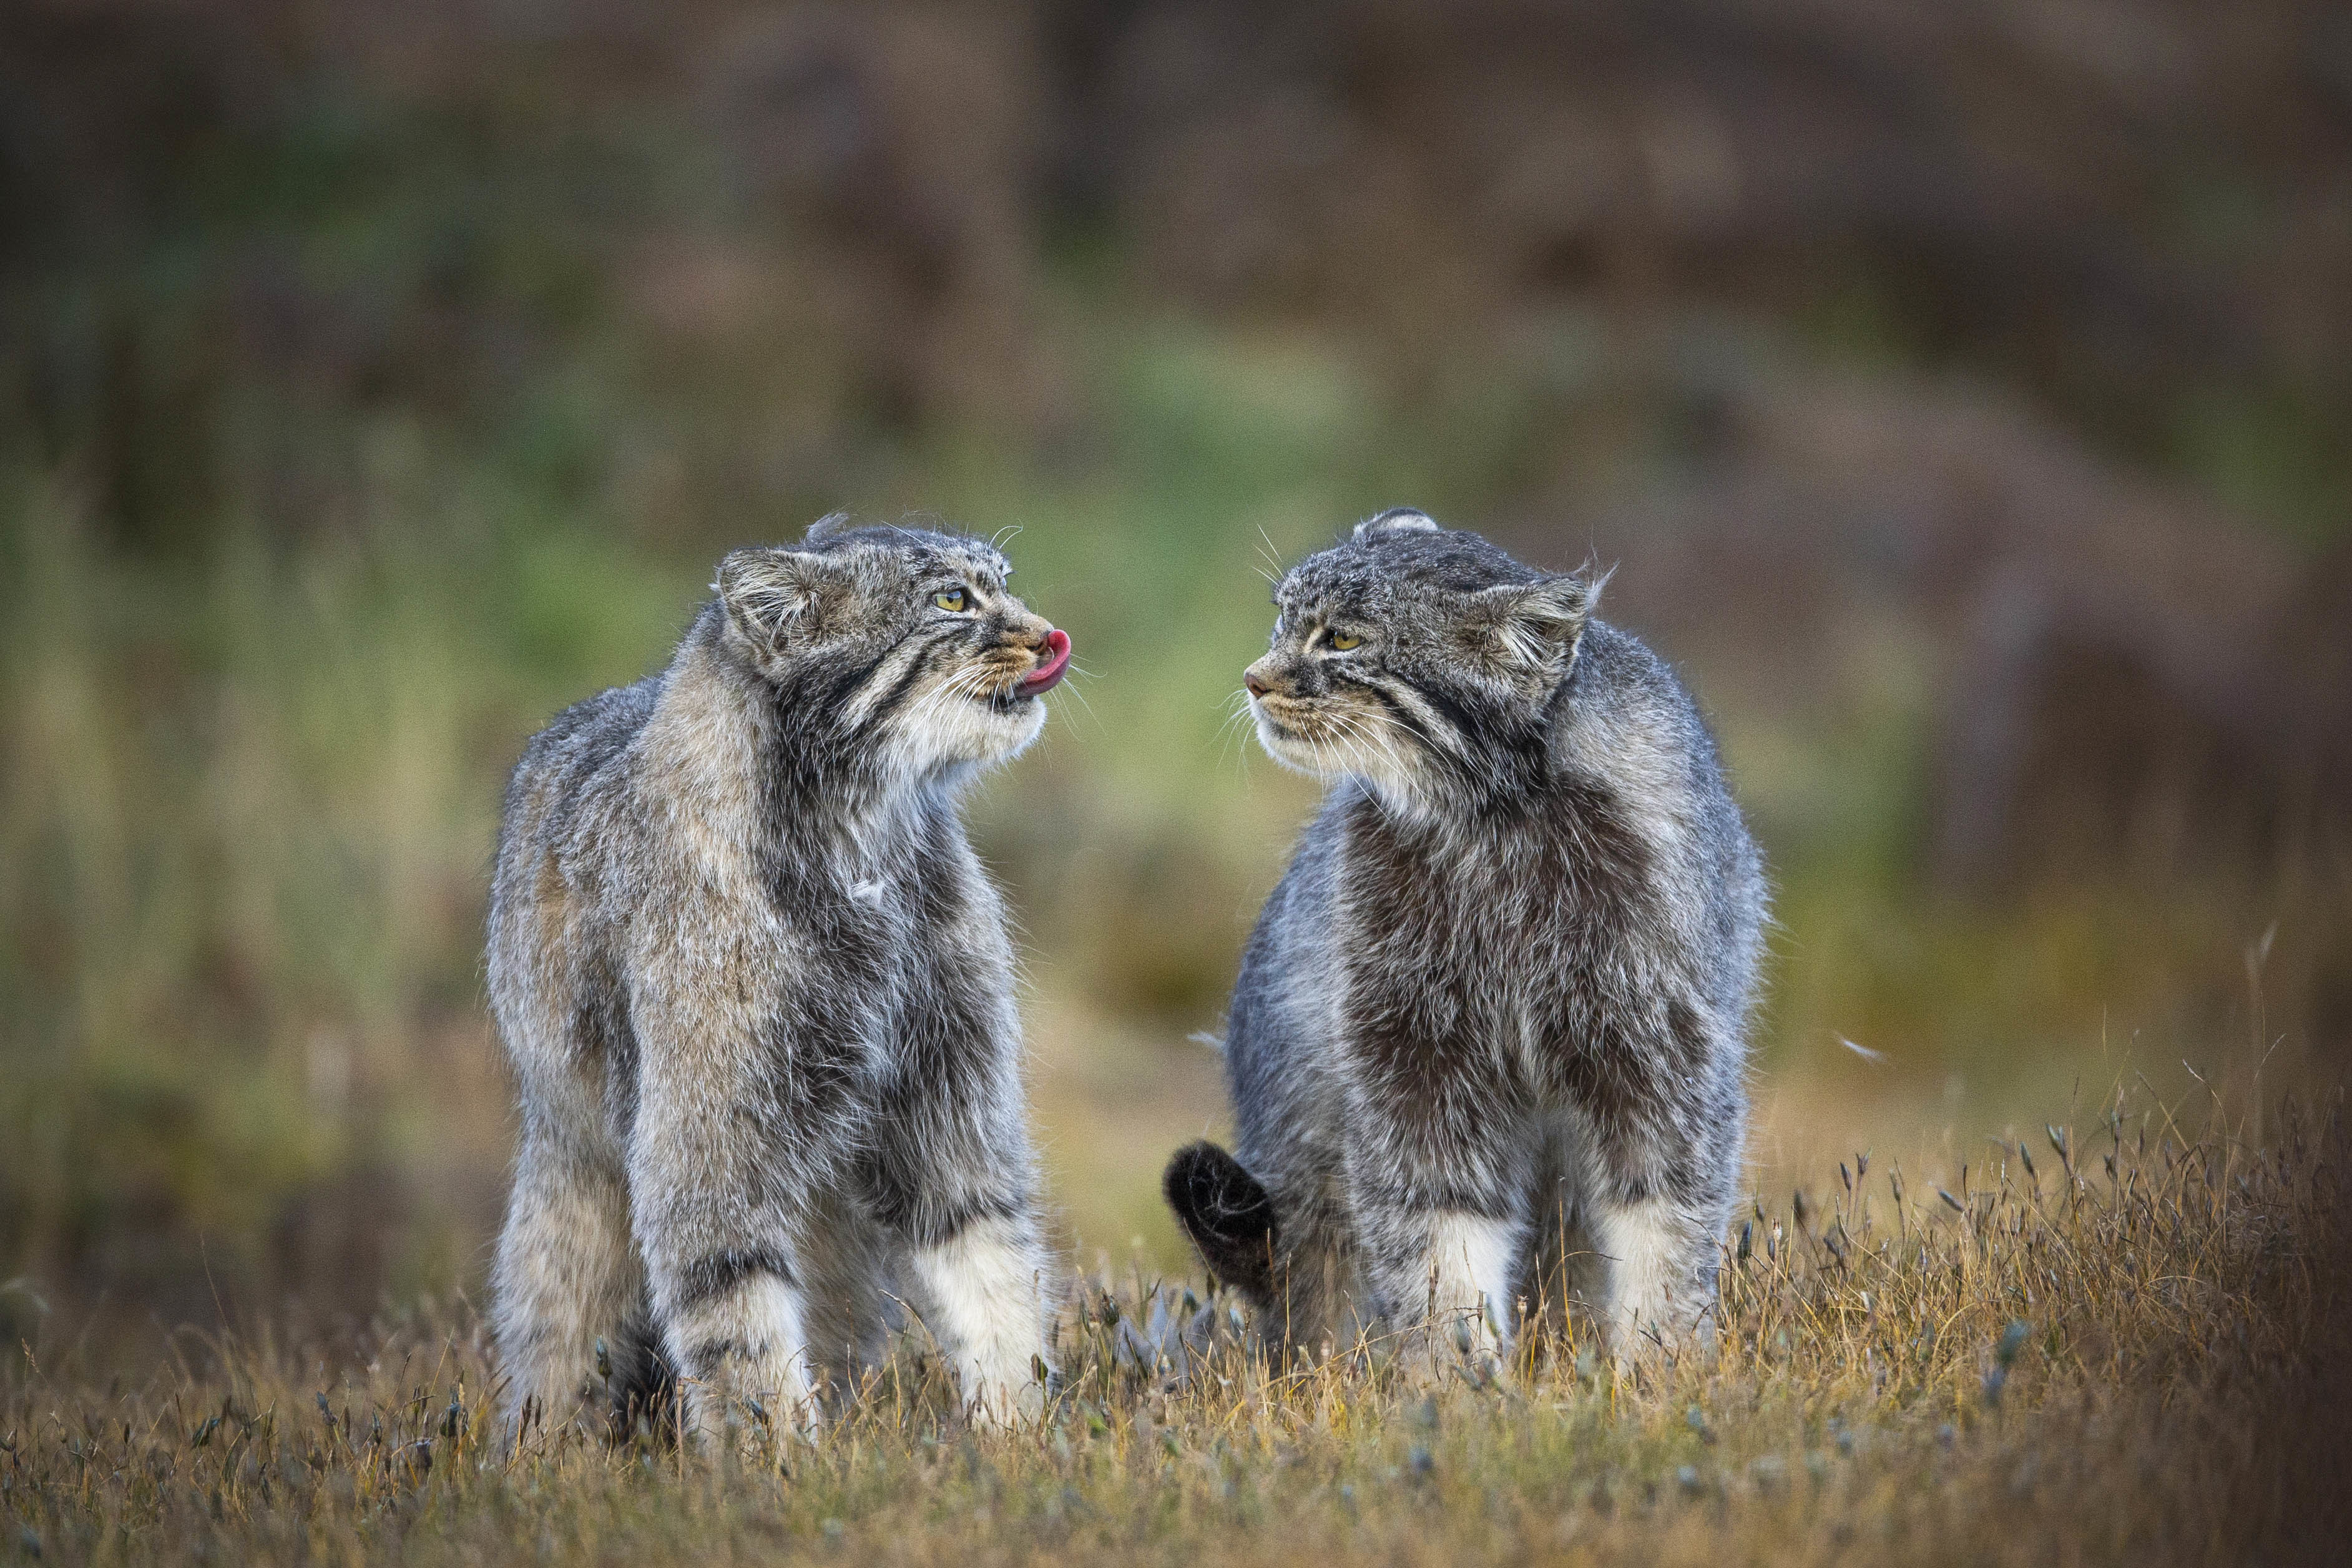 steppe cats share a habitat with the Tibetan fox